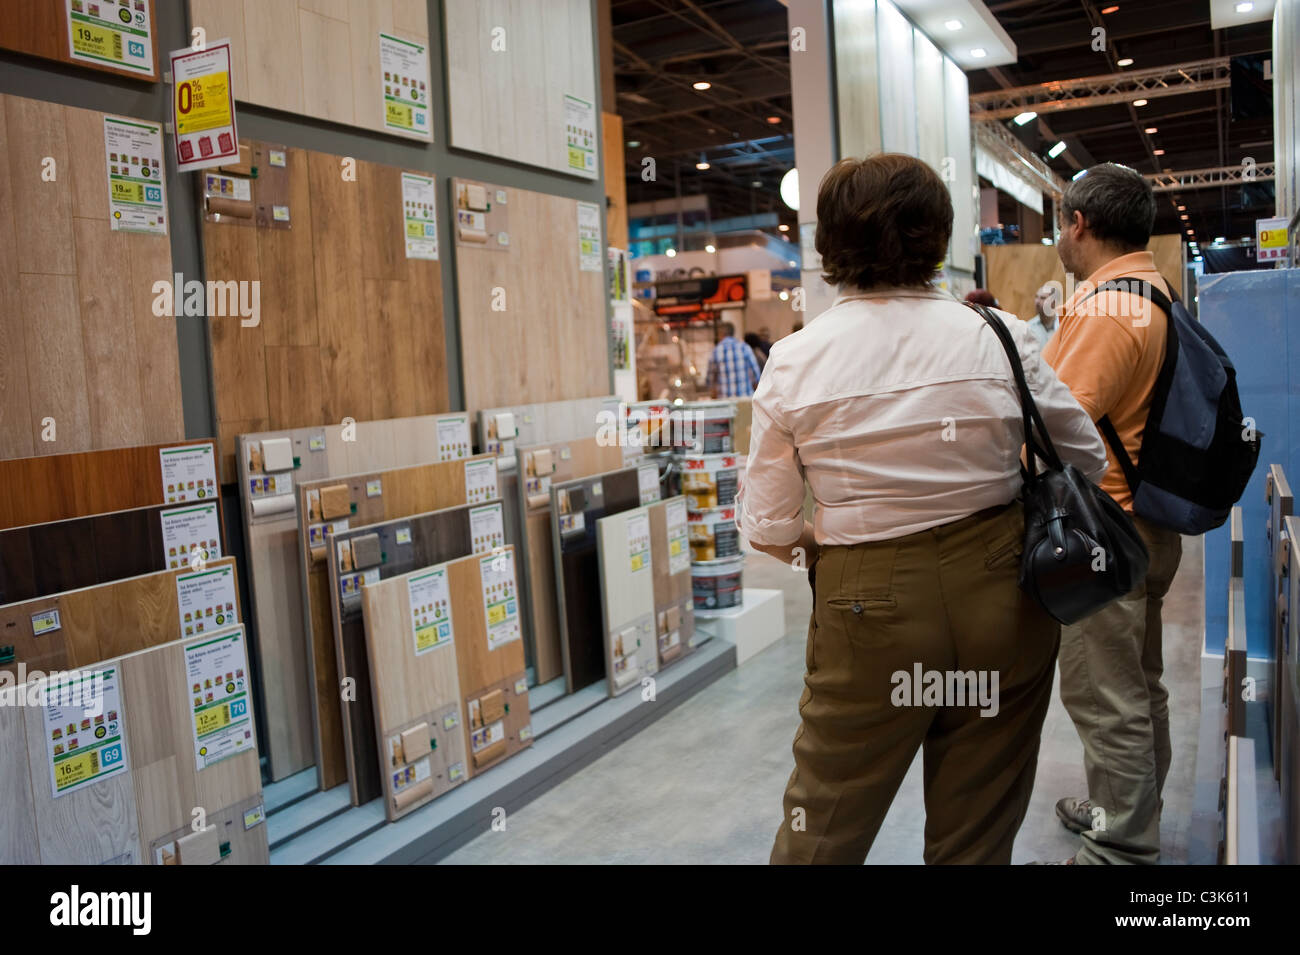 Hardwares Stock Photos Hardwares Stock Images Alamy